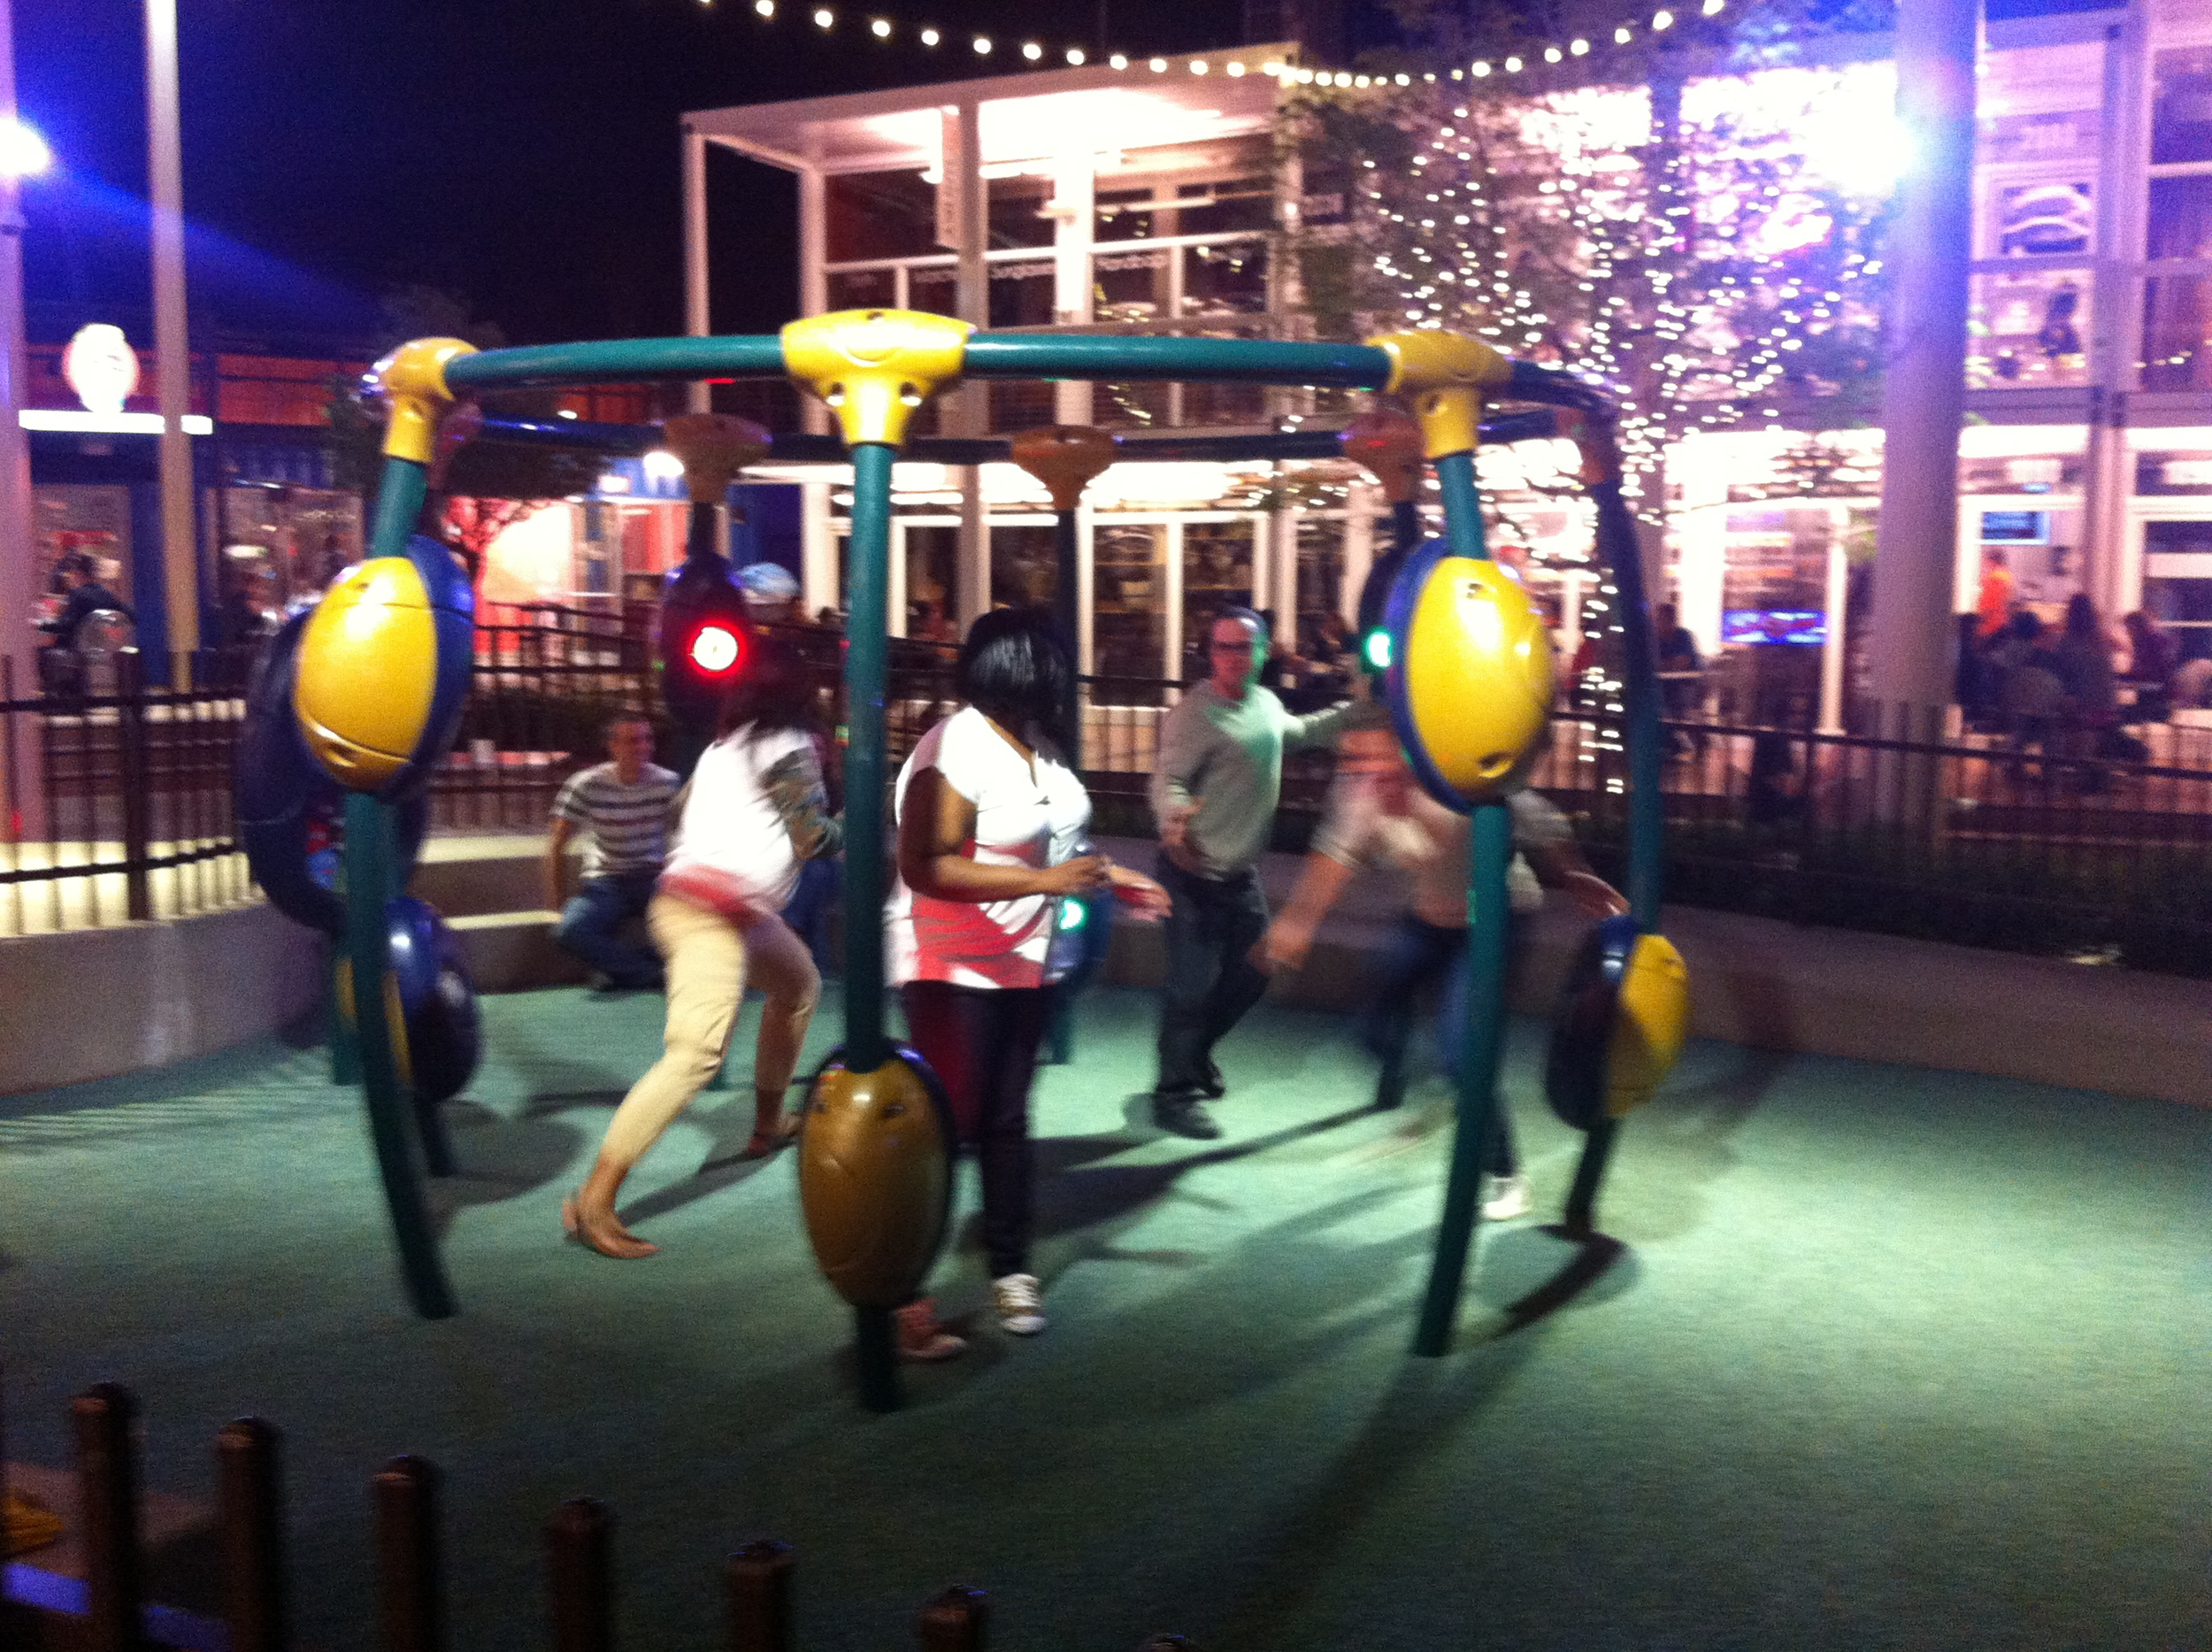 Adults using the children's playground. at night.